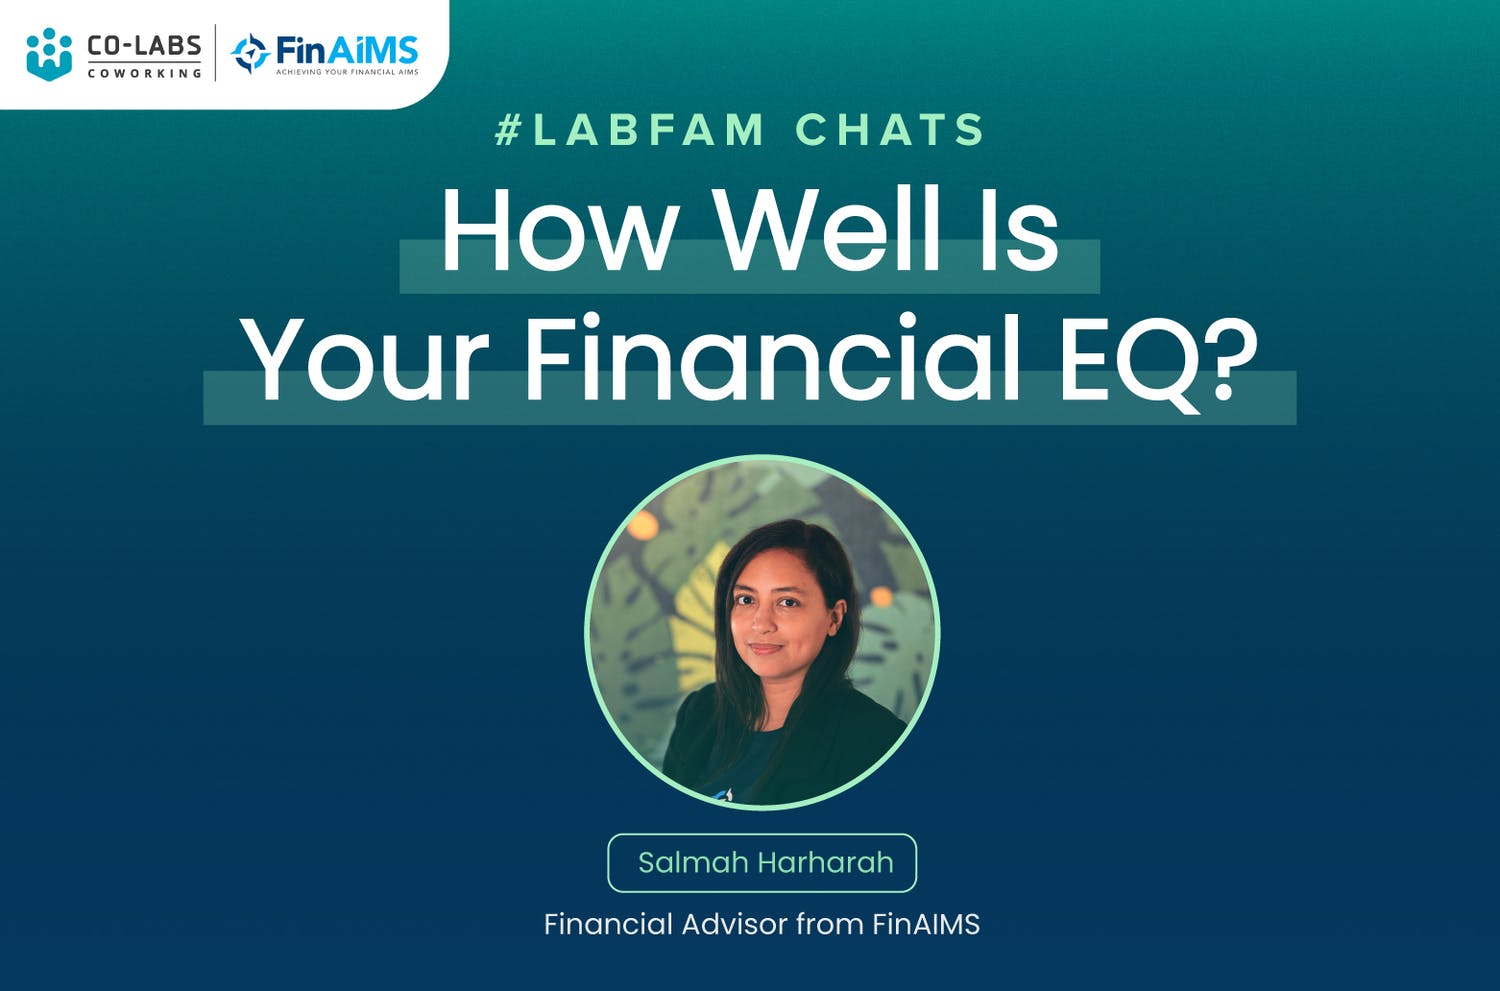 #LabFam Chats: How Well Is Your Financial EQ?